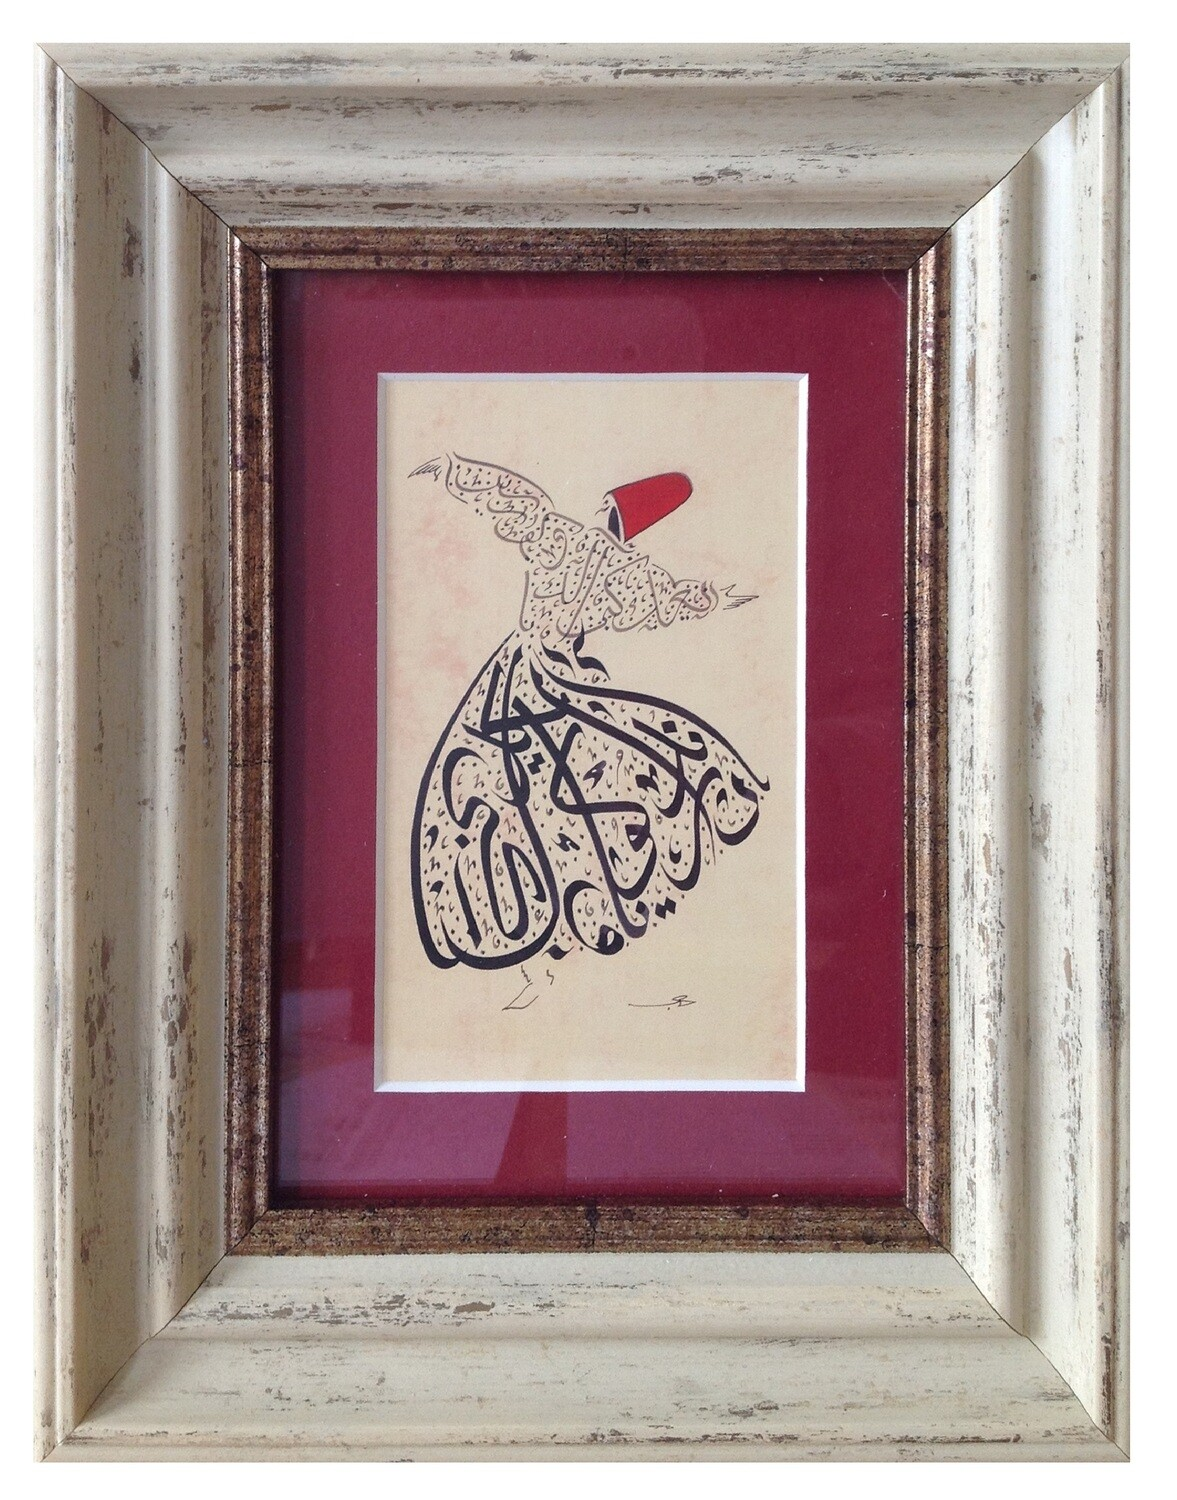 Whirling Dervish Red Rumi Poetry in Cream Distressed Frame